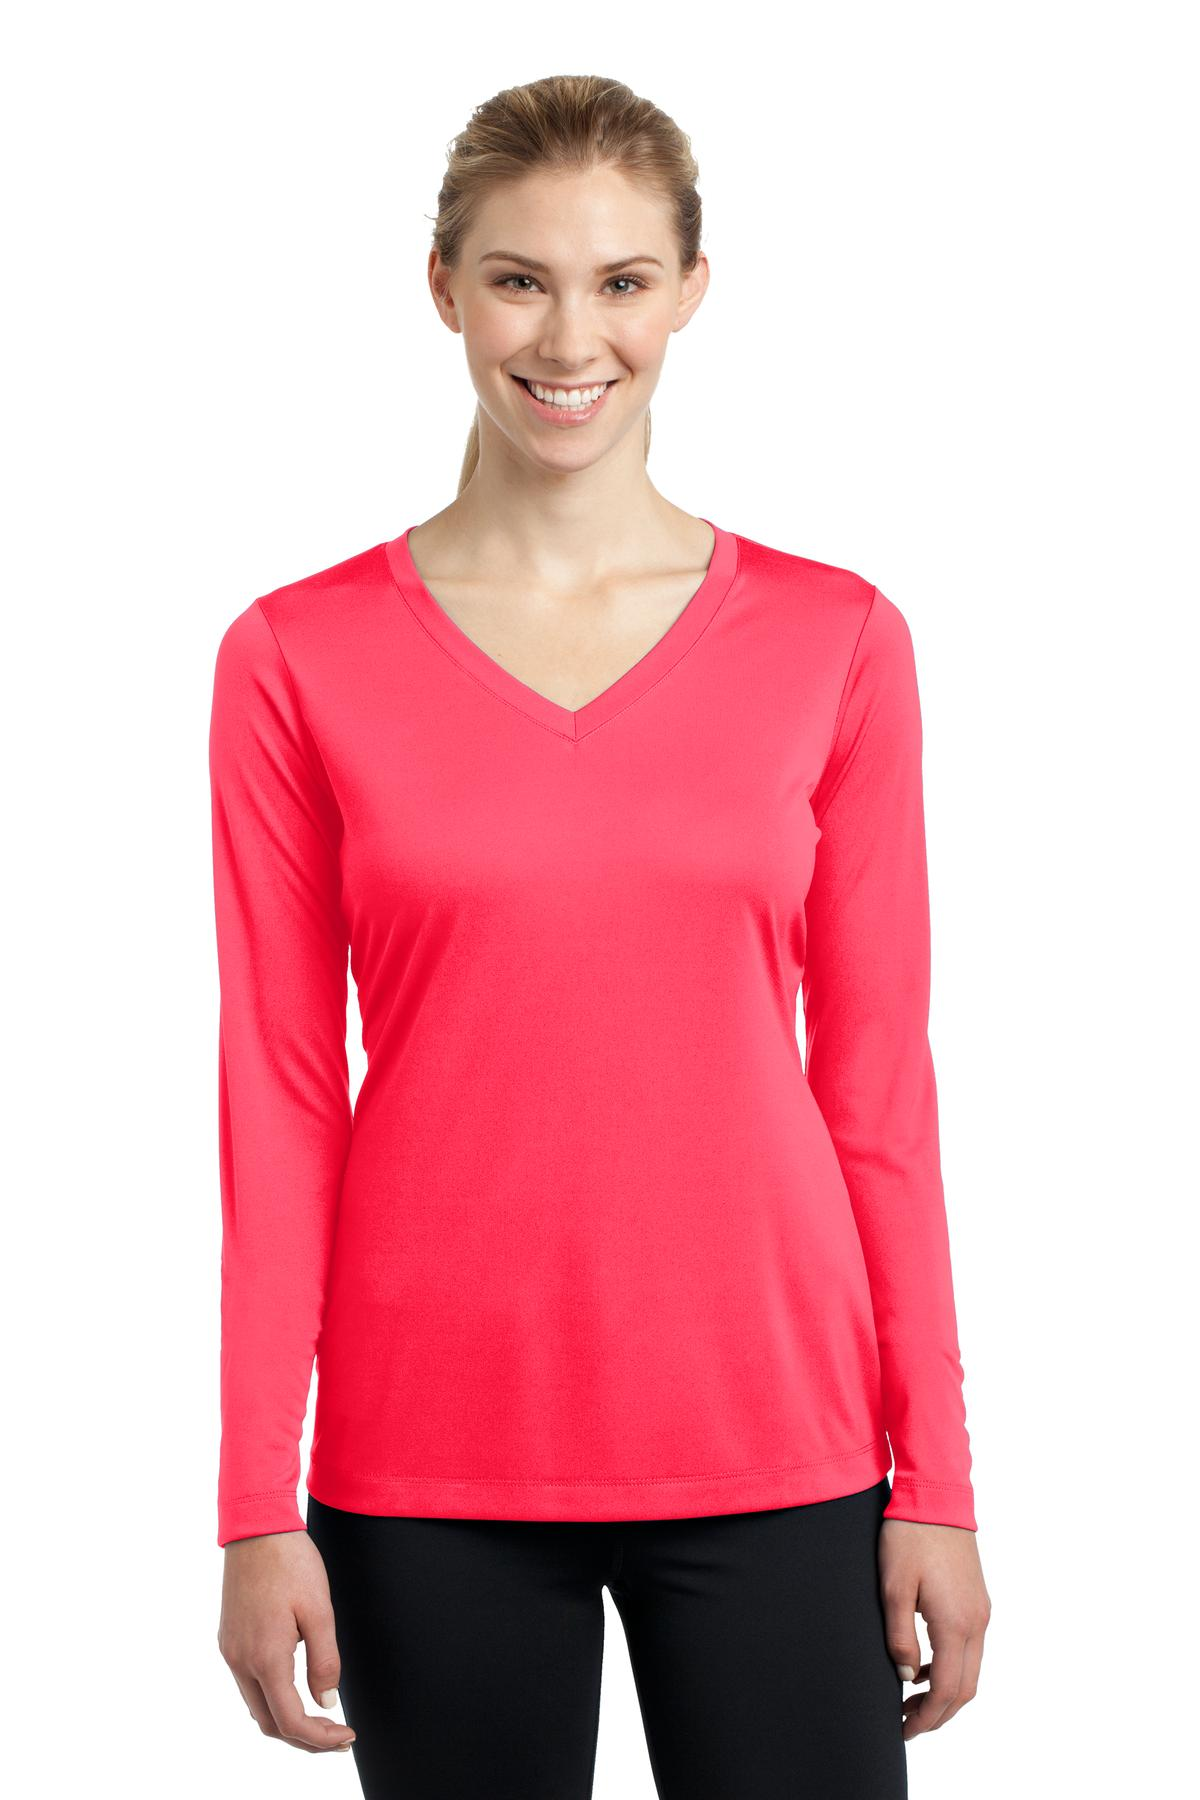 Sport-Tek ®  Ladies Long Sleeve PosiCharge ®  Competitor™ V-Neck Tee. LST353LS - Hot Coral